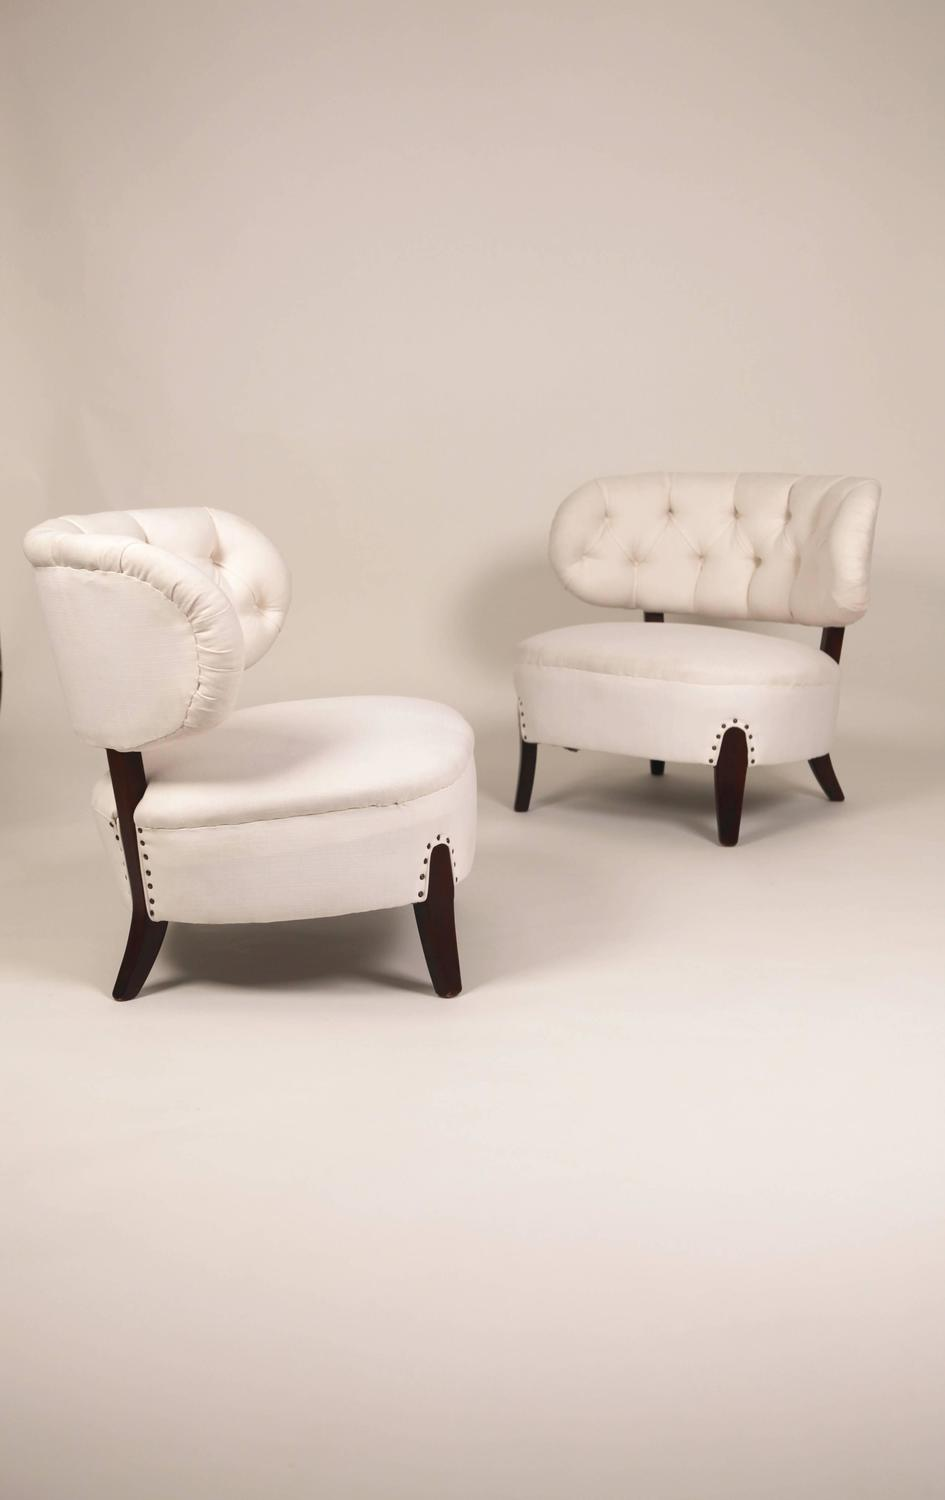 otto schulz cocktail chairs sweden 1940s at 1stdibs. Black Bedroom Furniture Sets. Home Design Ideas